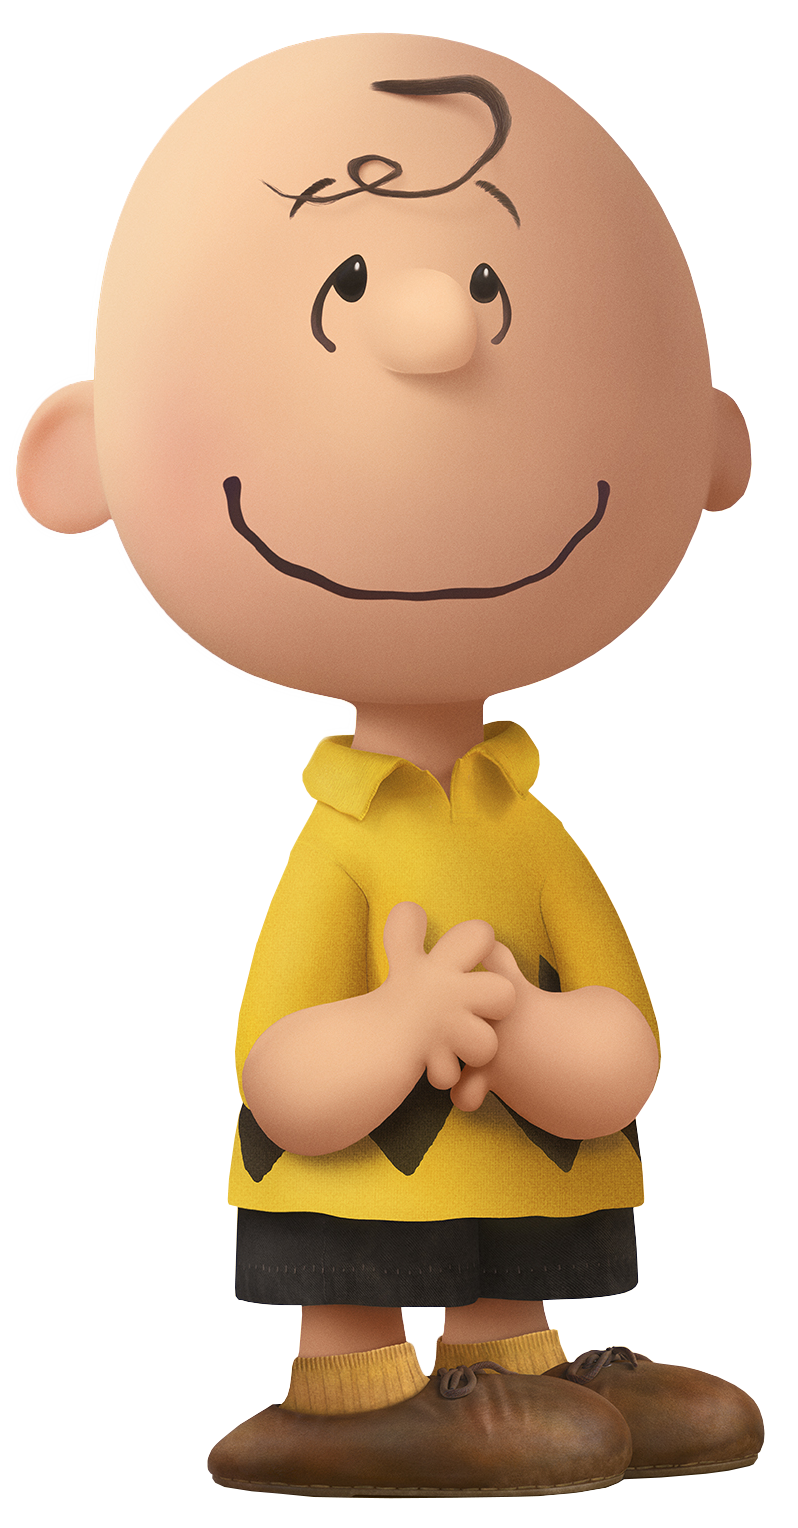 Charlie brown snoopy linus. Peanuts clipart nut